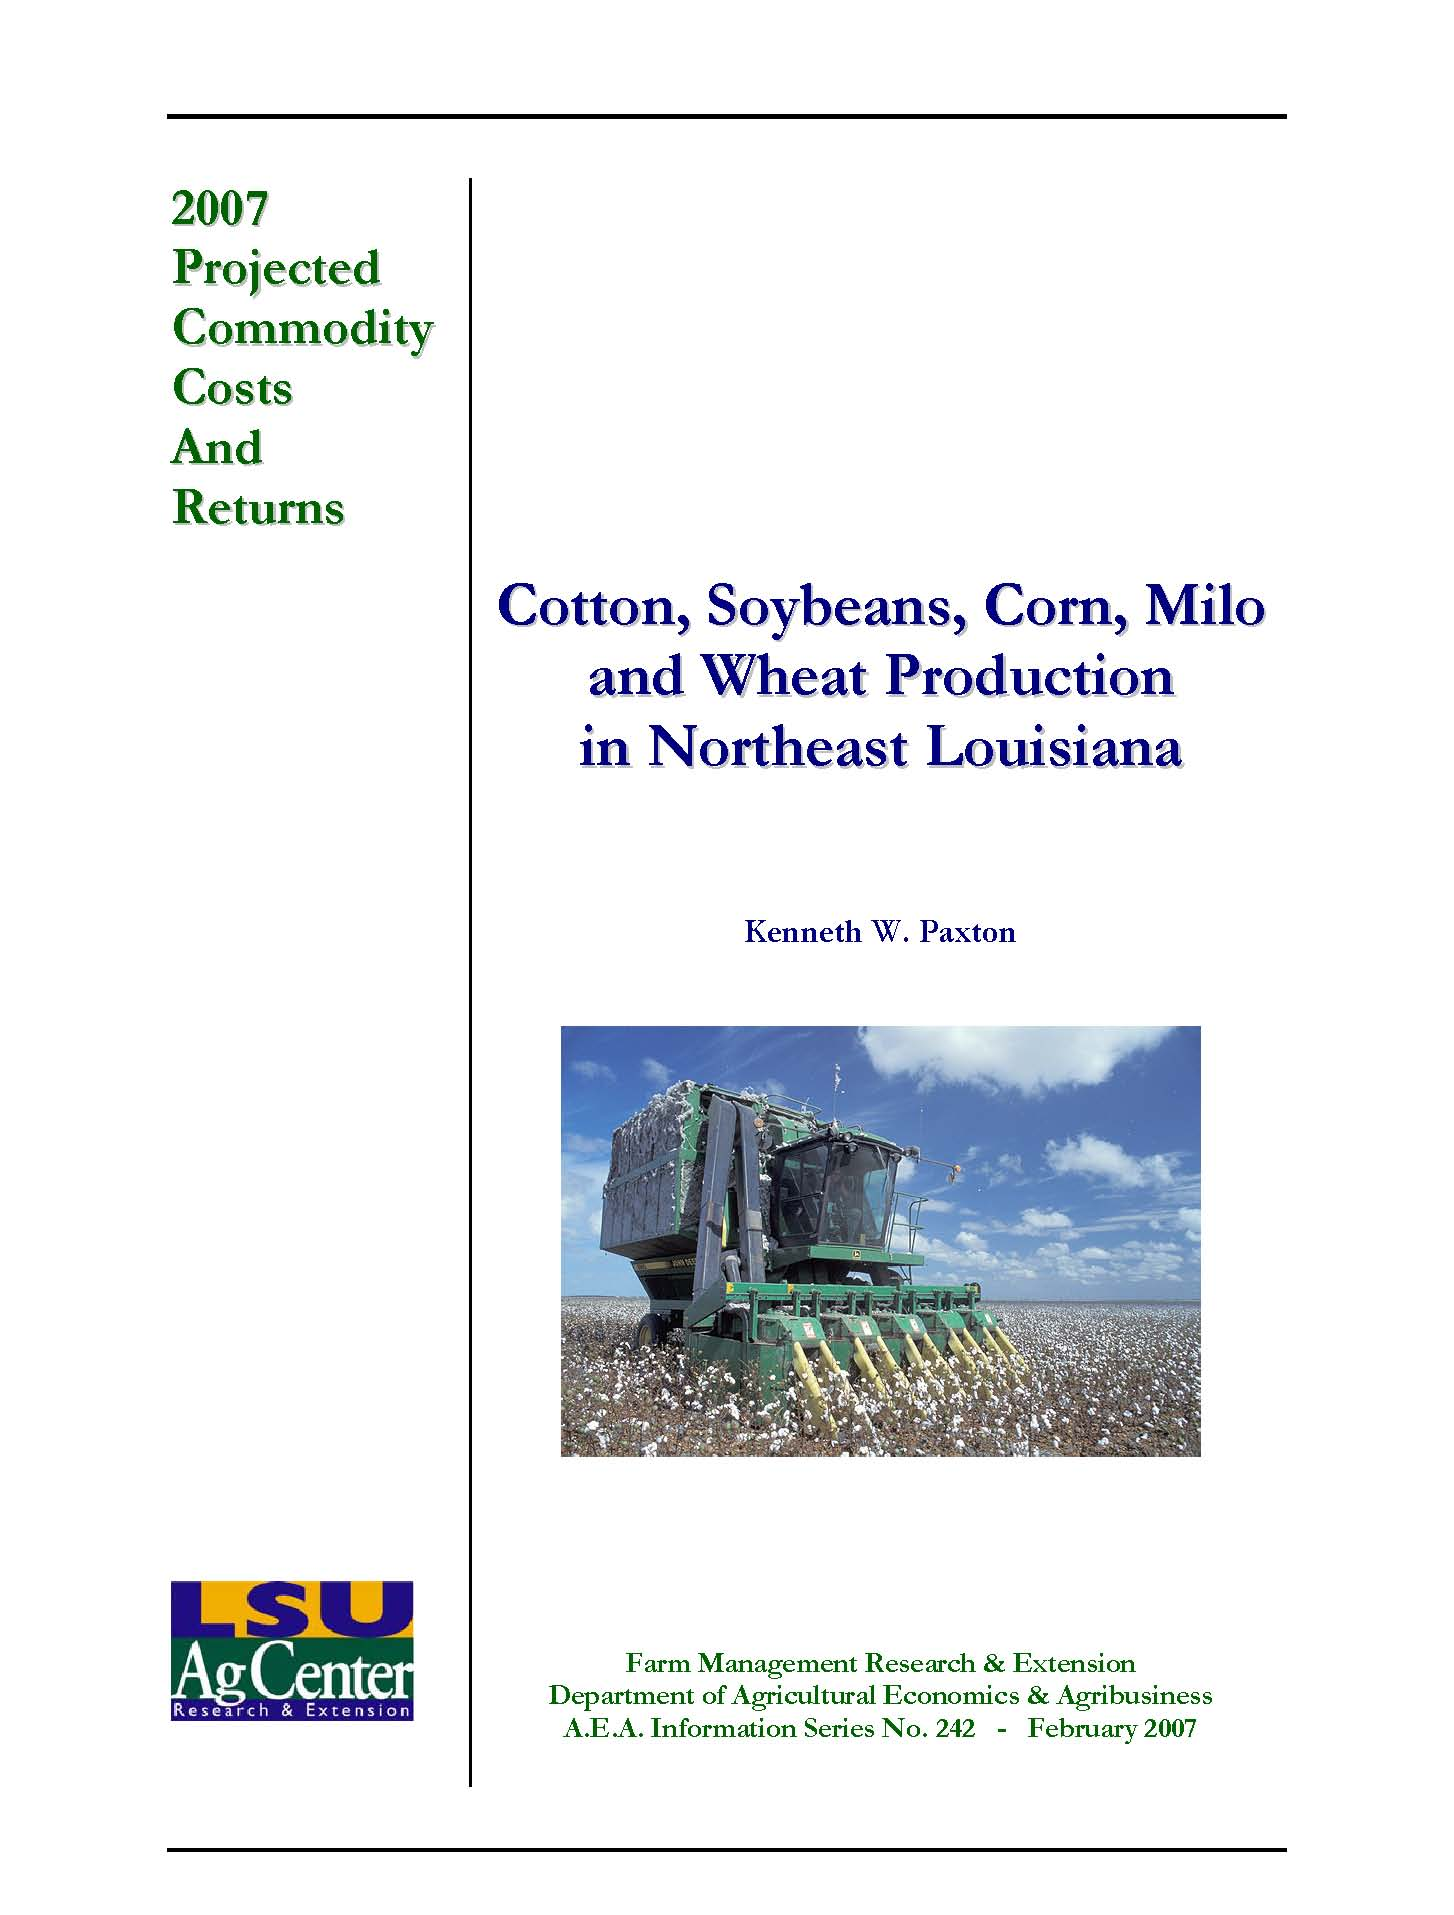 2007 Northeast Louisiana Projected Cotton Soybeans Corn Milo and Wheat Production Costs